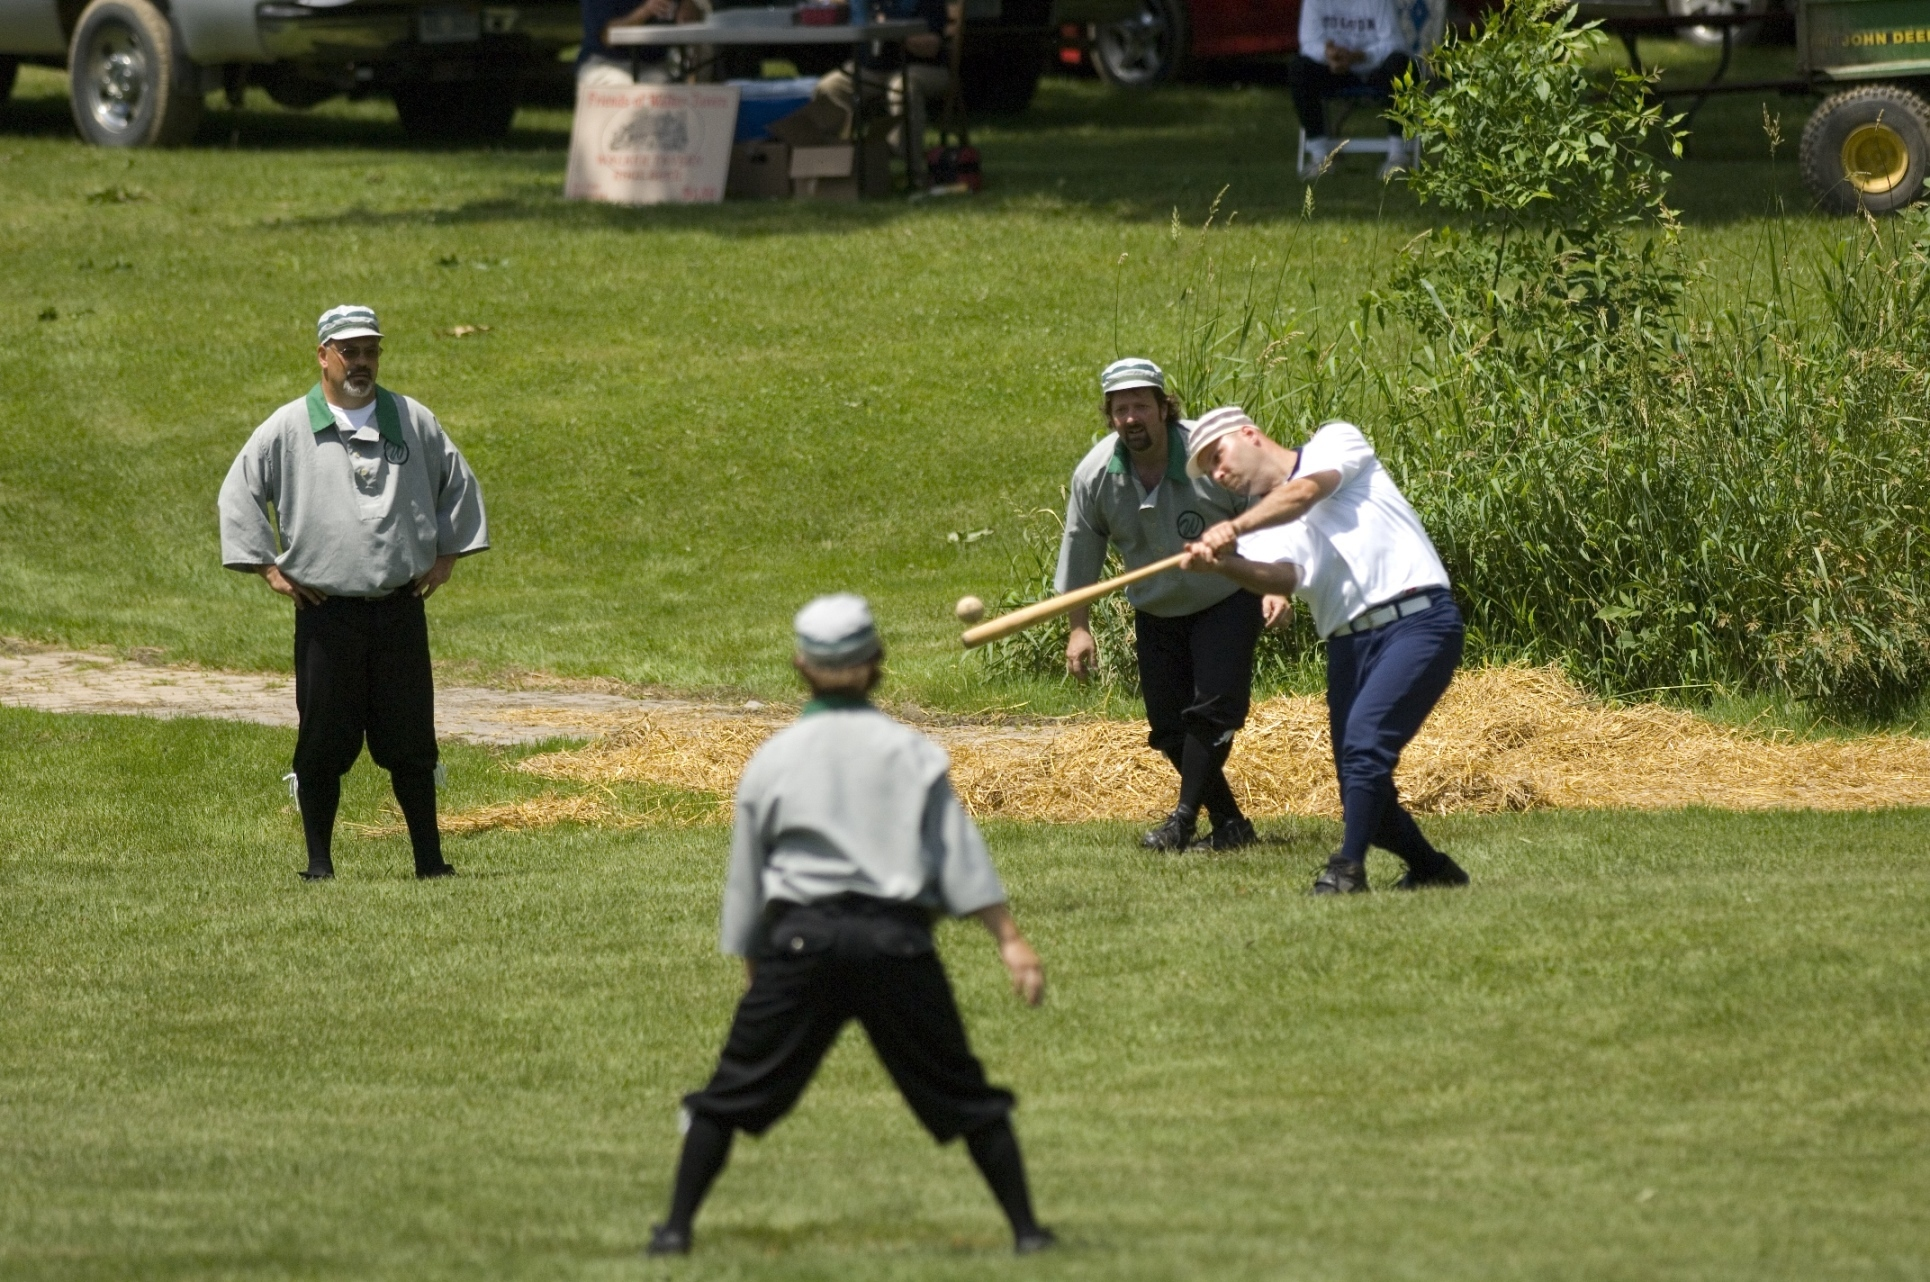 A popular attraction at Walker Tavern Historic Site, the Walker Wheels vintage base ball team plays by 1860's rules - no sliding, swearing or mitts.